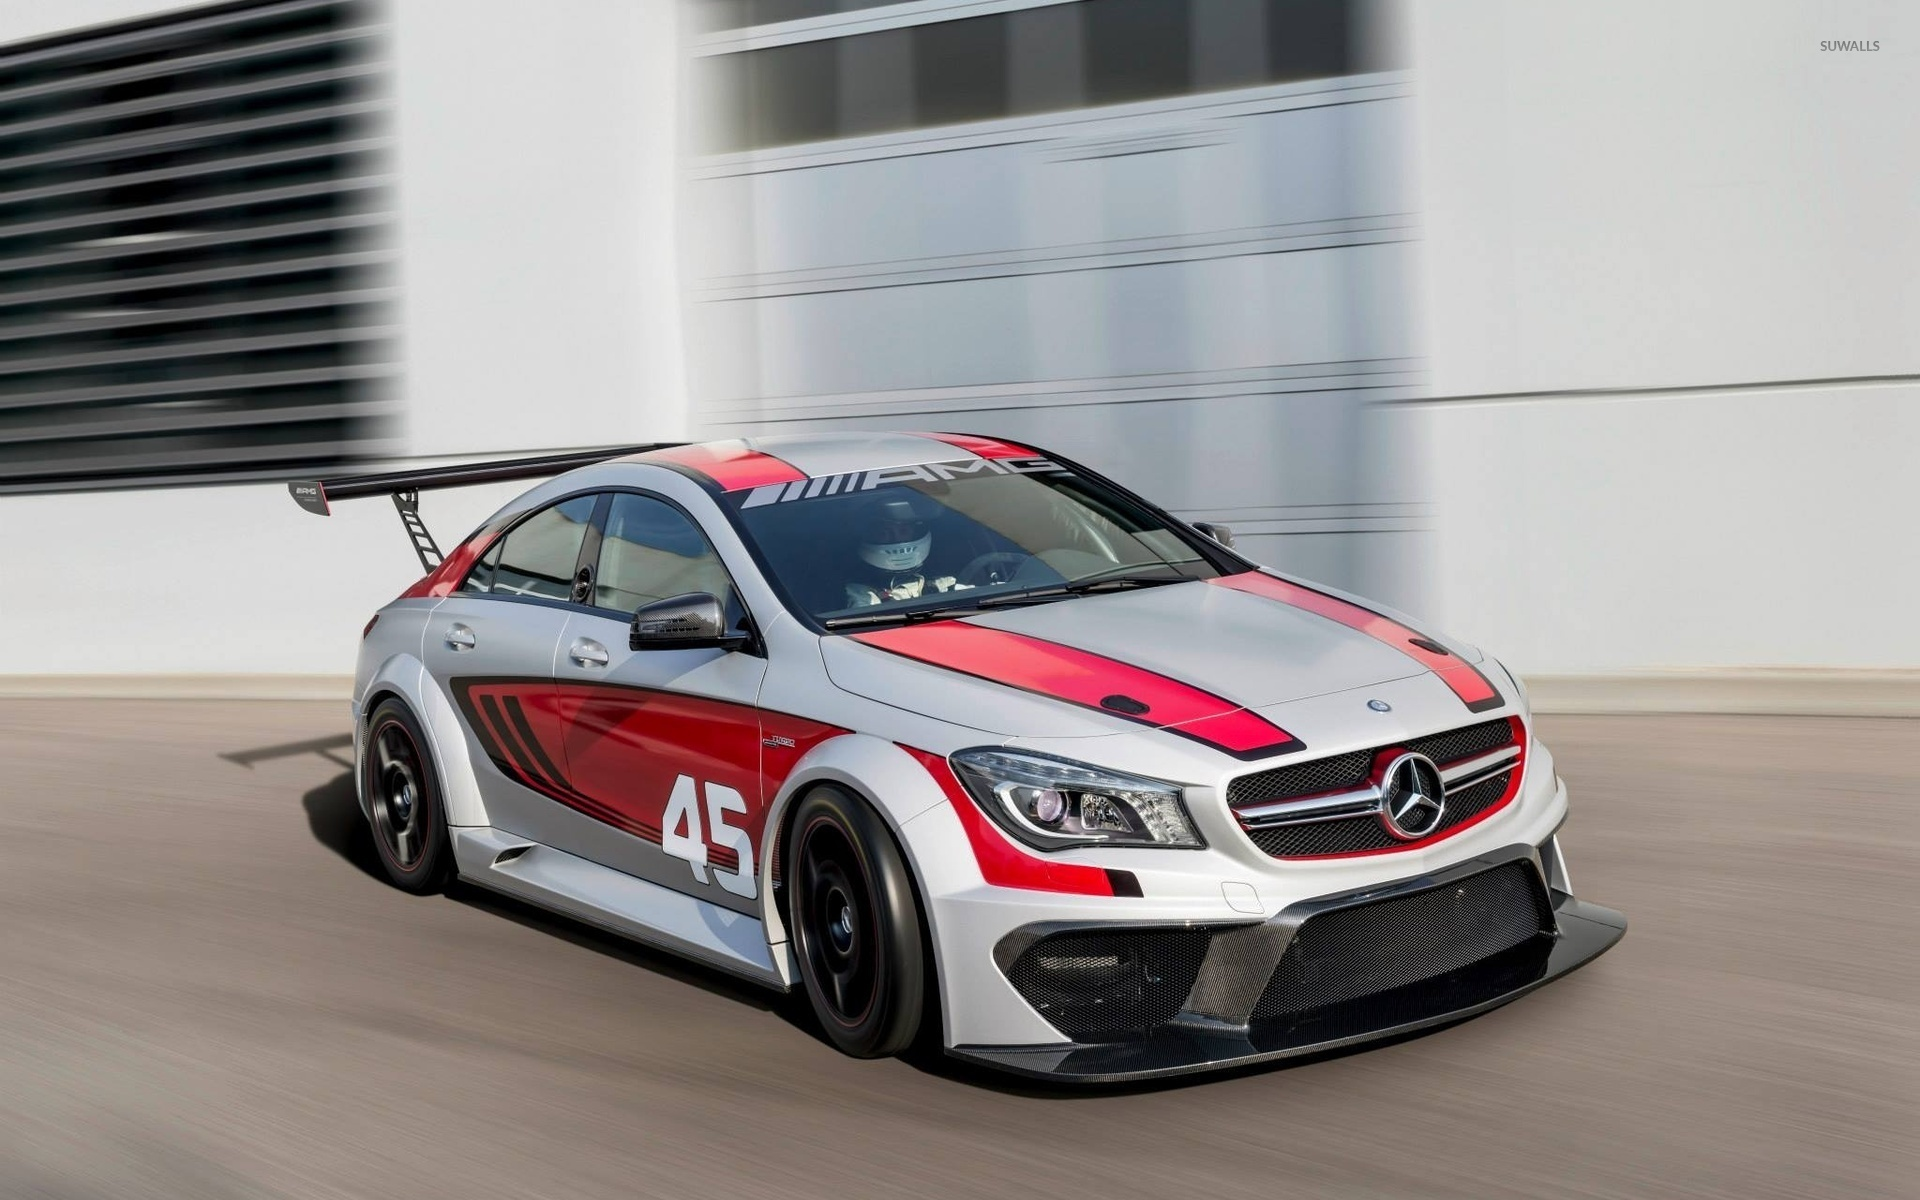 Racing amg mercedes benz cla class wallpaper car for Mercedes benz race